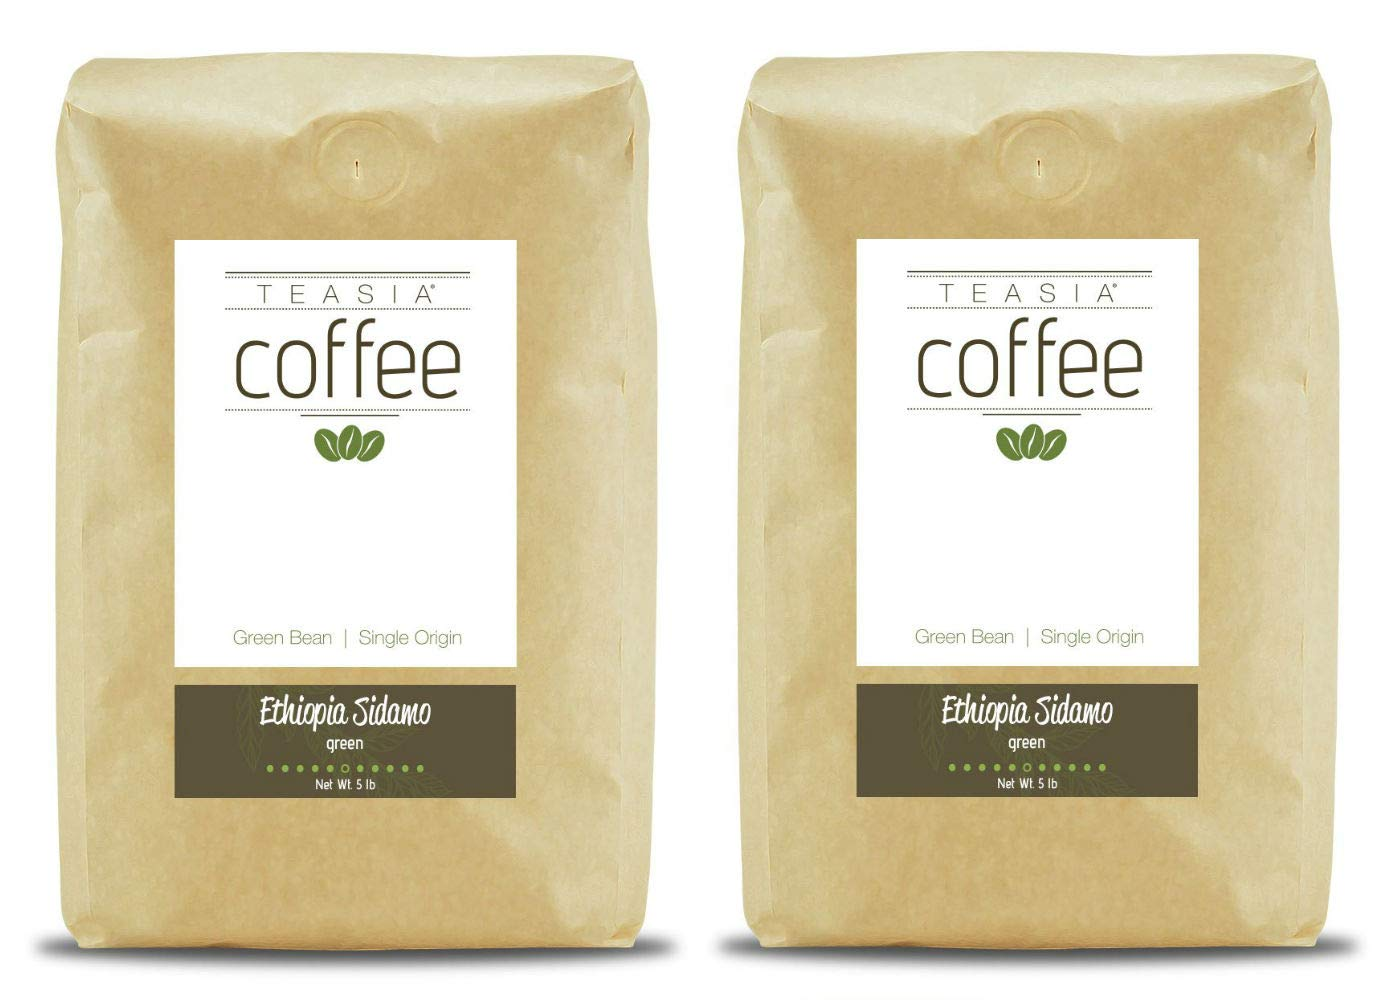 Teasia Coffee, Ethiopia Sidamo, Single Origin Fair Trade, Green Unroasted Whole Coffee Beans, 5-Pound Bag (2-Pack)